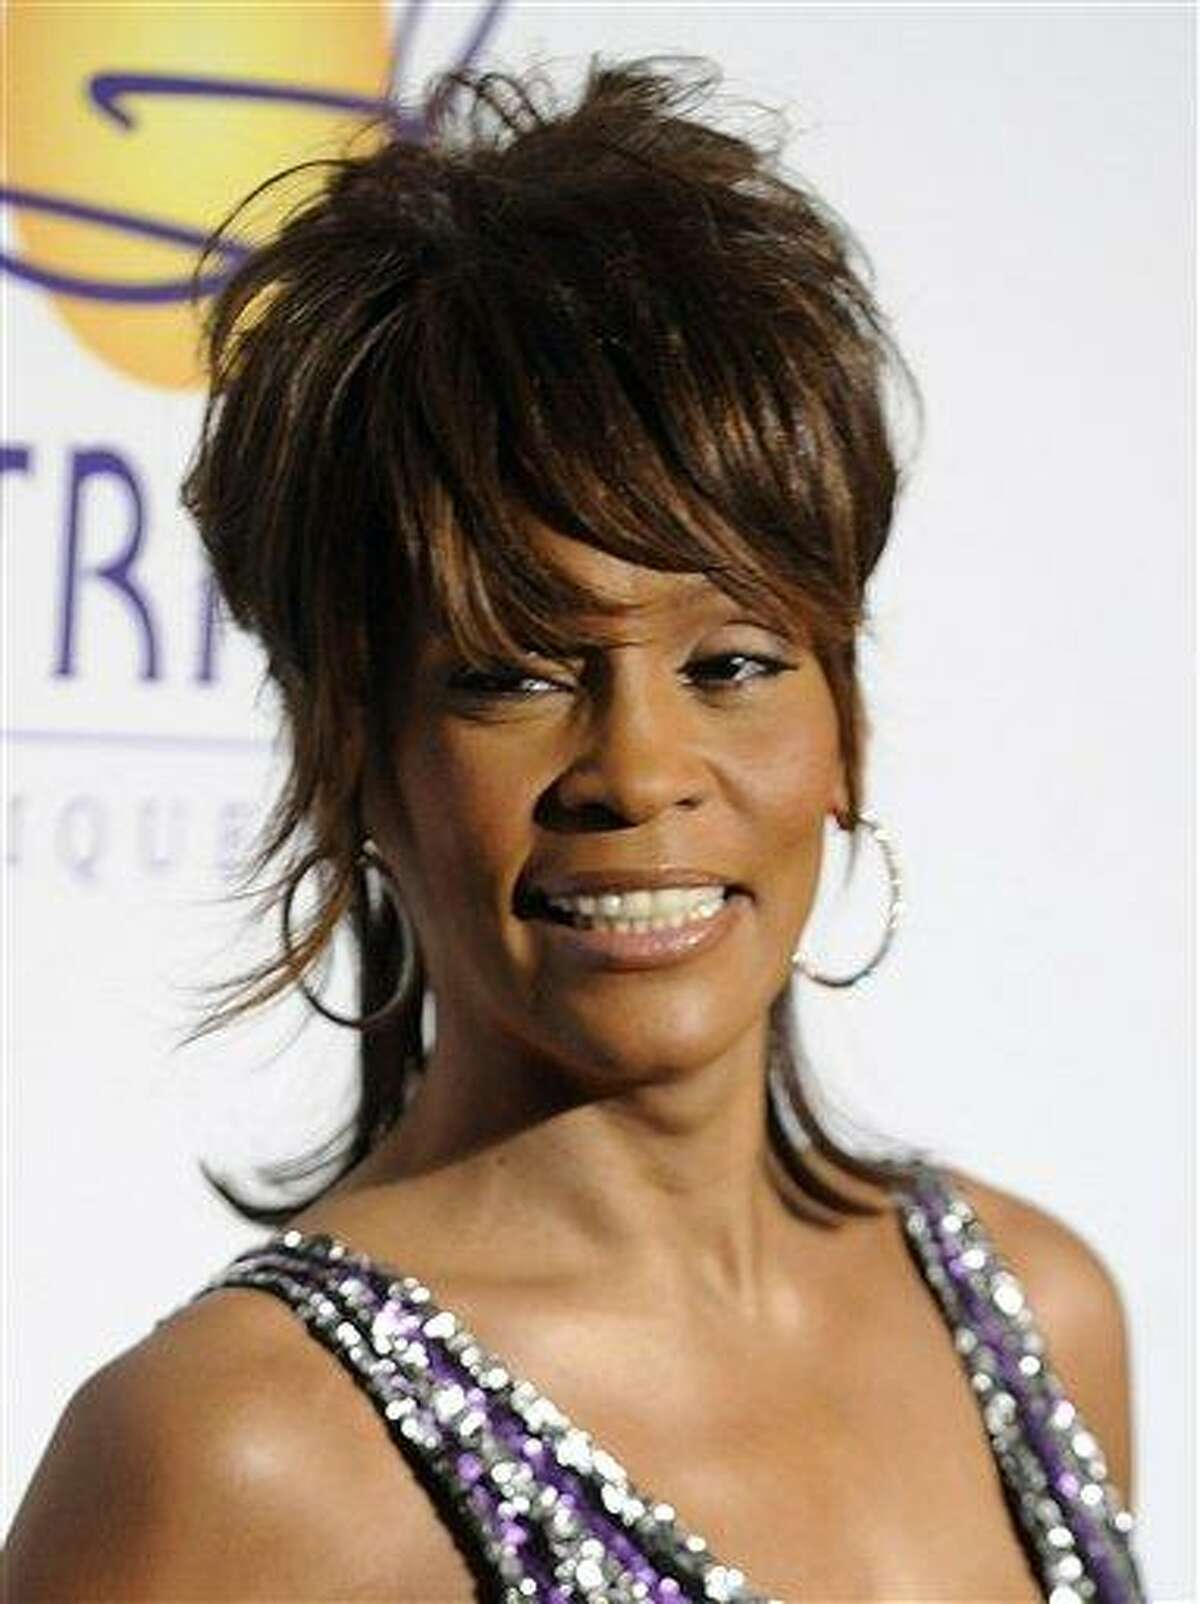 FILE - In this Feb. 9, 2008 file photo, singer Whitney Houston arrives at the Clive Davis Pre-Grammy Party in Beverly Hills, Calif. Whitney Houston, who reigned as pop music's queen until her majestic voice and regal image were ravaged by drug use, has died, Saturday, Feb. 11, 2012. She was 48. (AP Photo/Chris Pizzello, file)